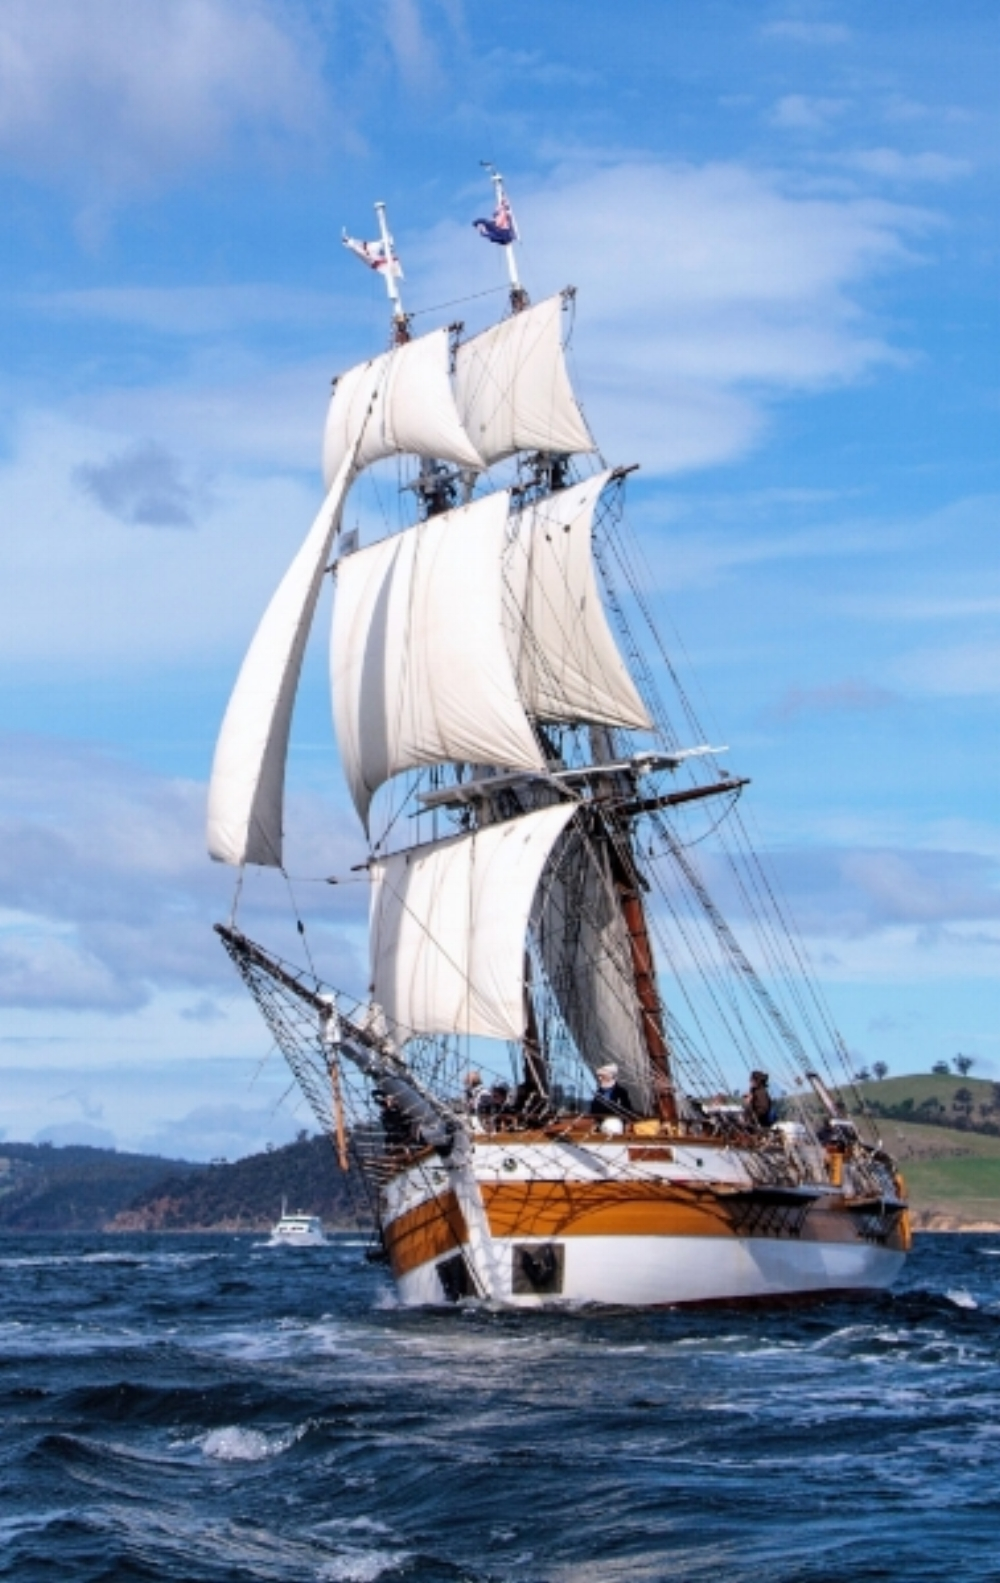 Lady Nelson  - The Paynesville Classic Boat Rally and Lady Nelson are excited to offer a unique opportunity of a lifetime. Take part in one or both voyages from Hobart to Paynesville and return in February and March 2018. To find out more and book online Click Here